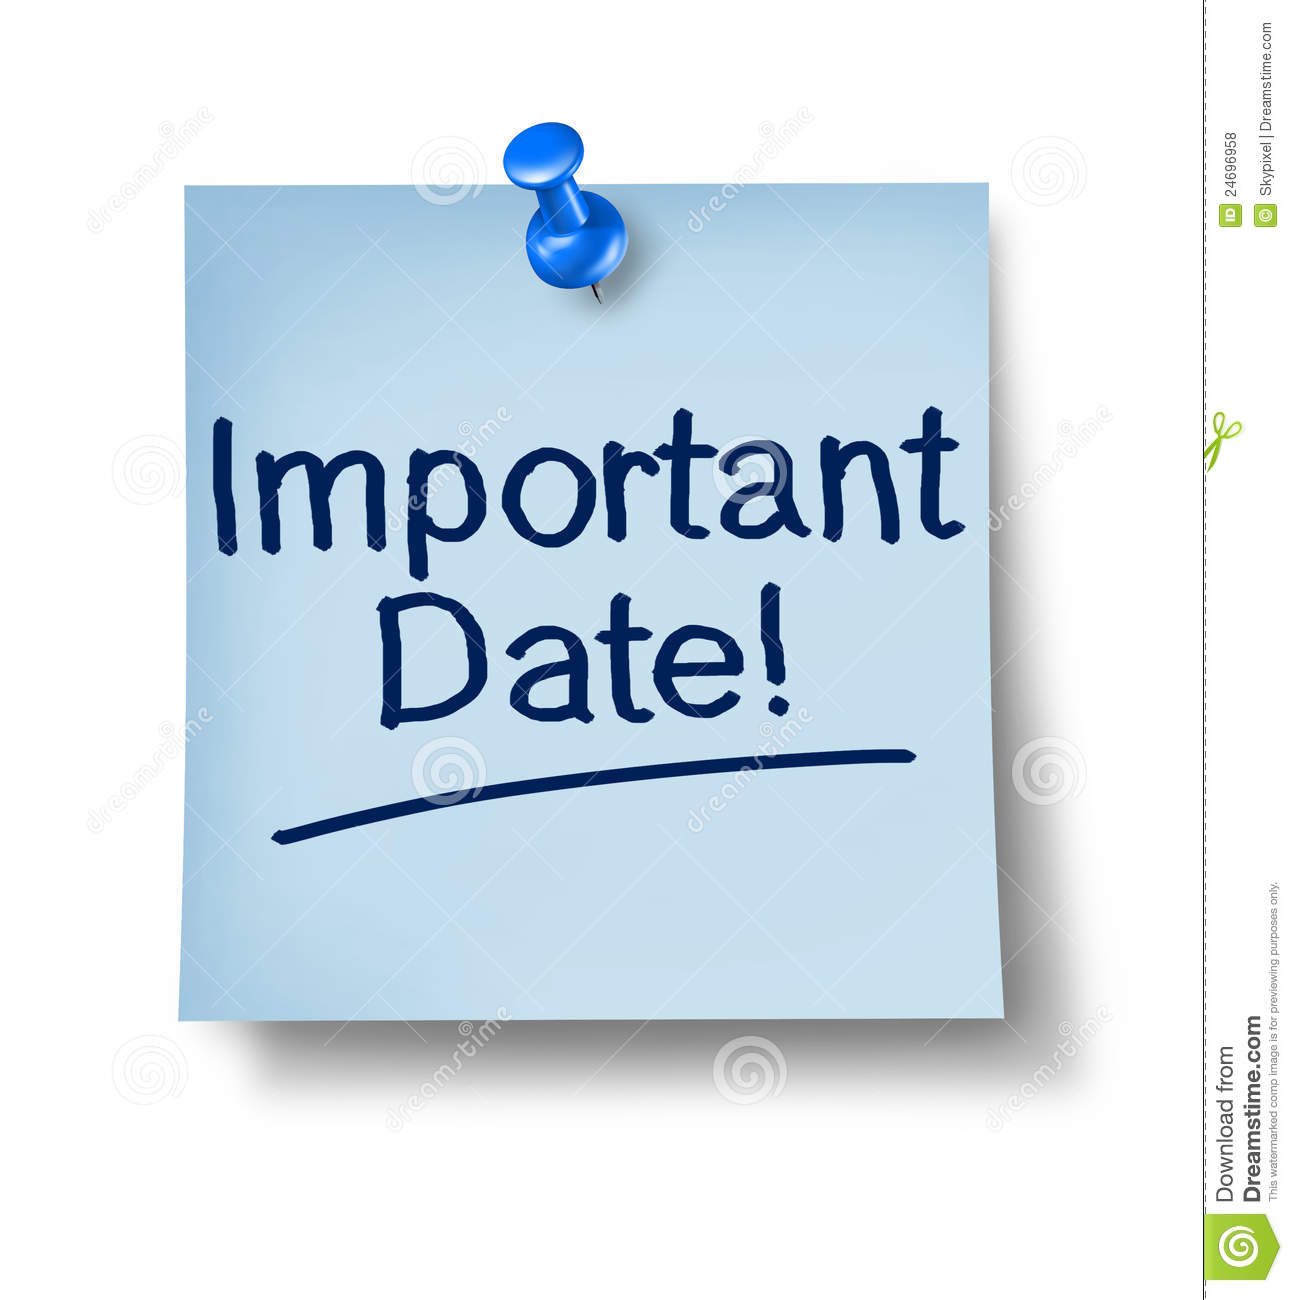 Important Date Office Note Royalty Free Stock Photos   Image  24696958